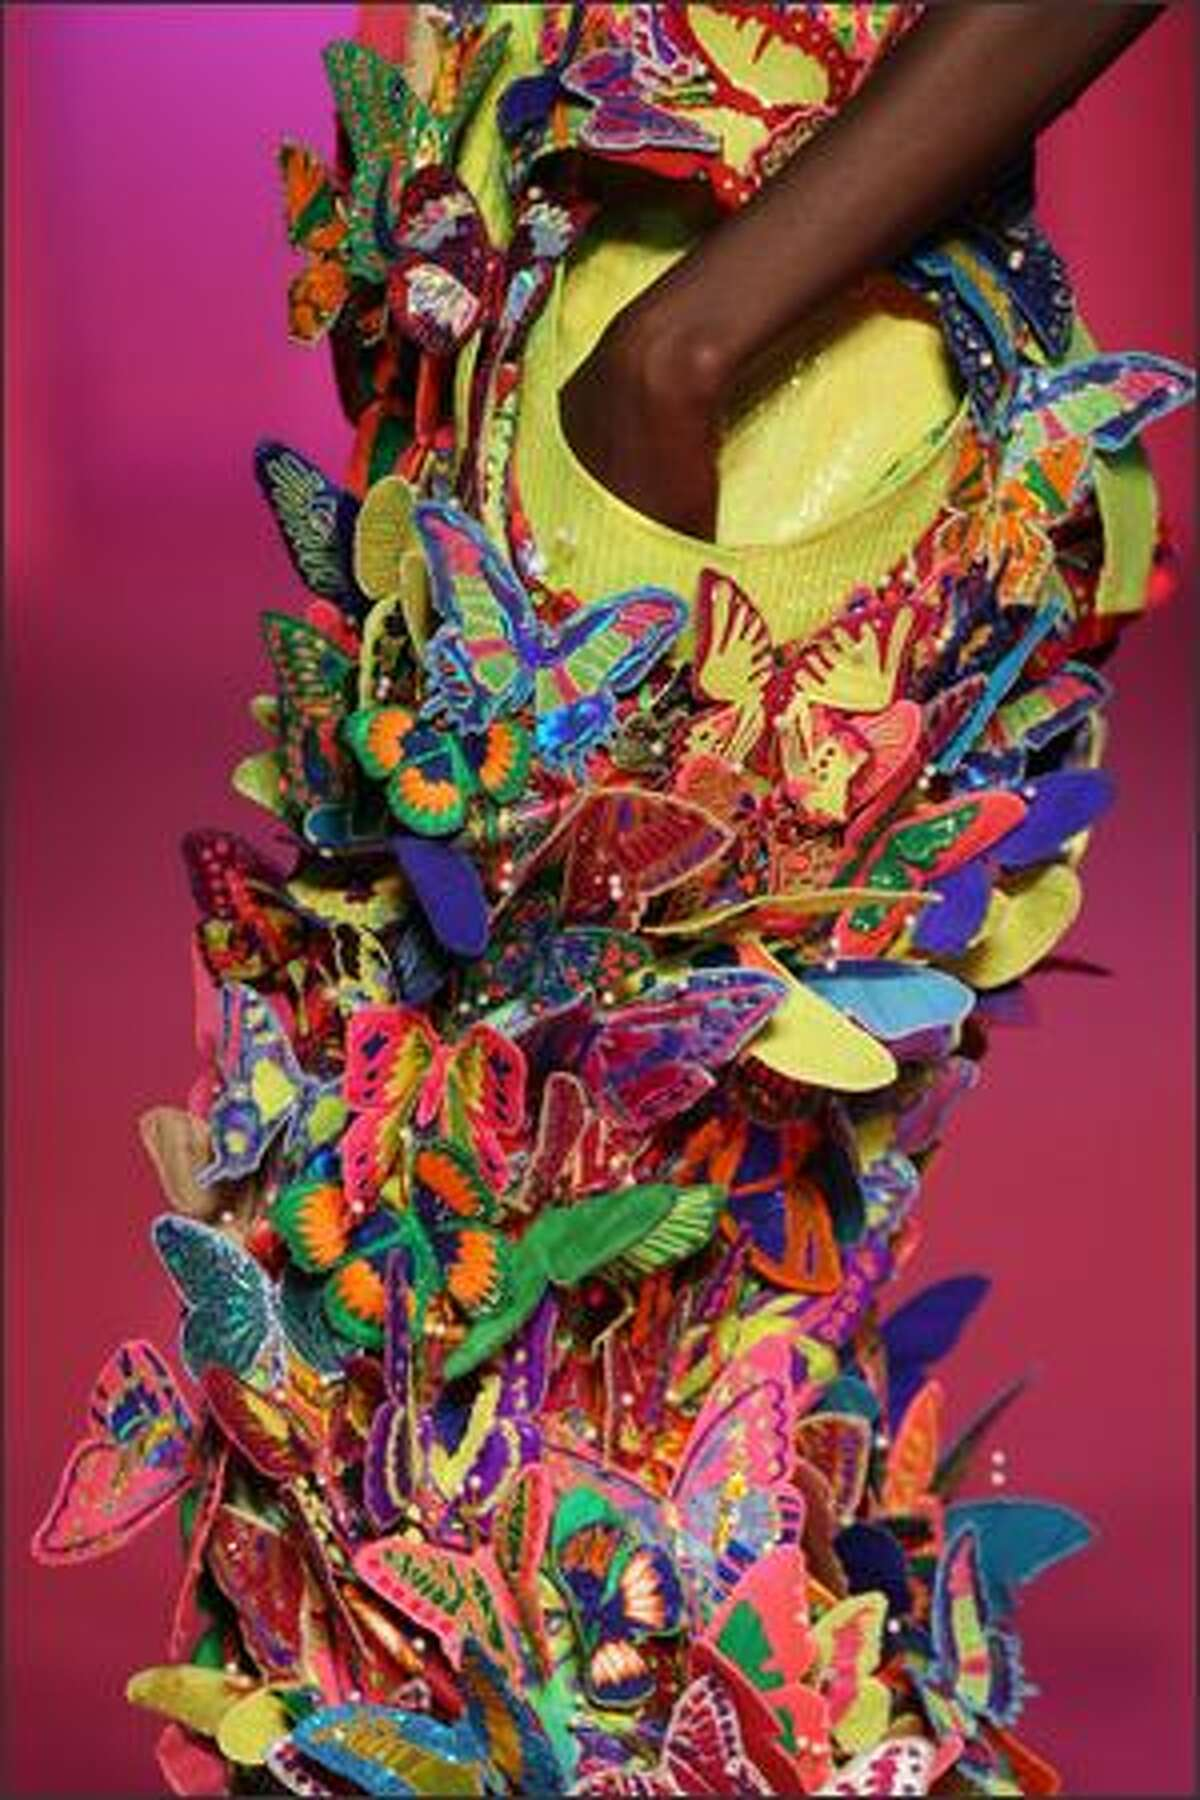 A model presents a creation by Indian designer Manish Arora during the Spring/Summer 2008 ready-to-wear collection show in Paris, 30 September 2007. AFP PHOTO FRANCOIS GUILLOT